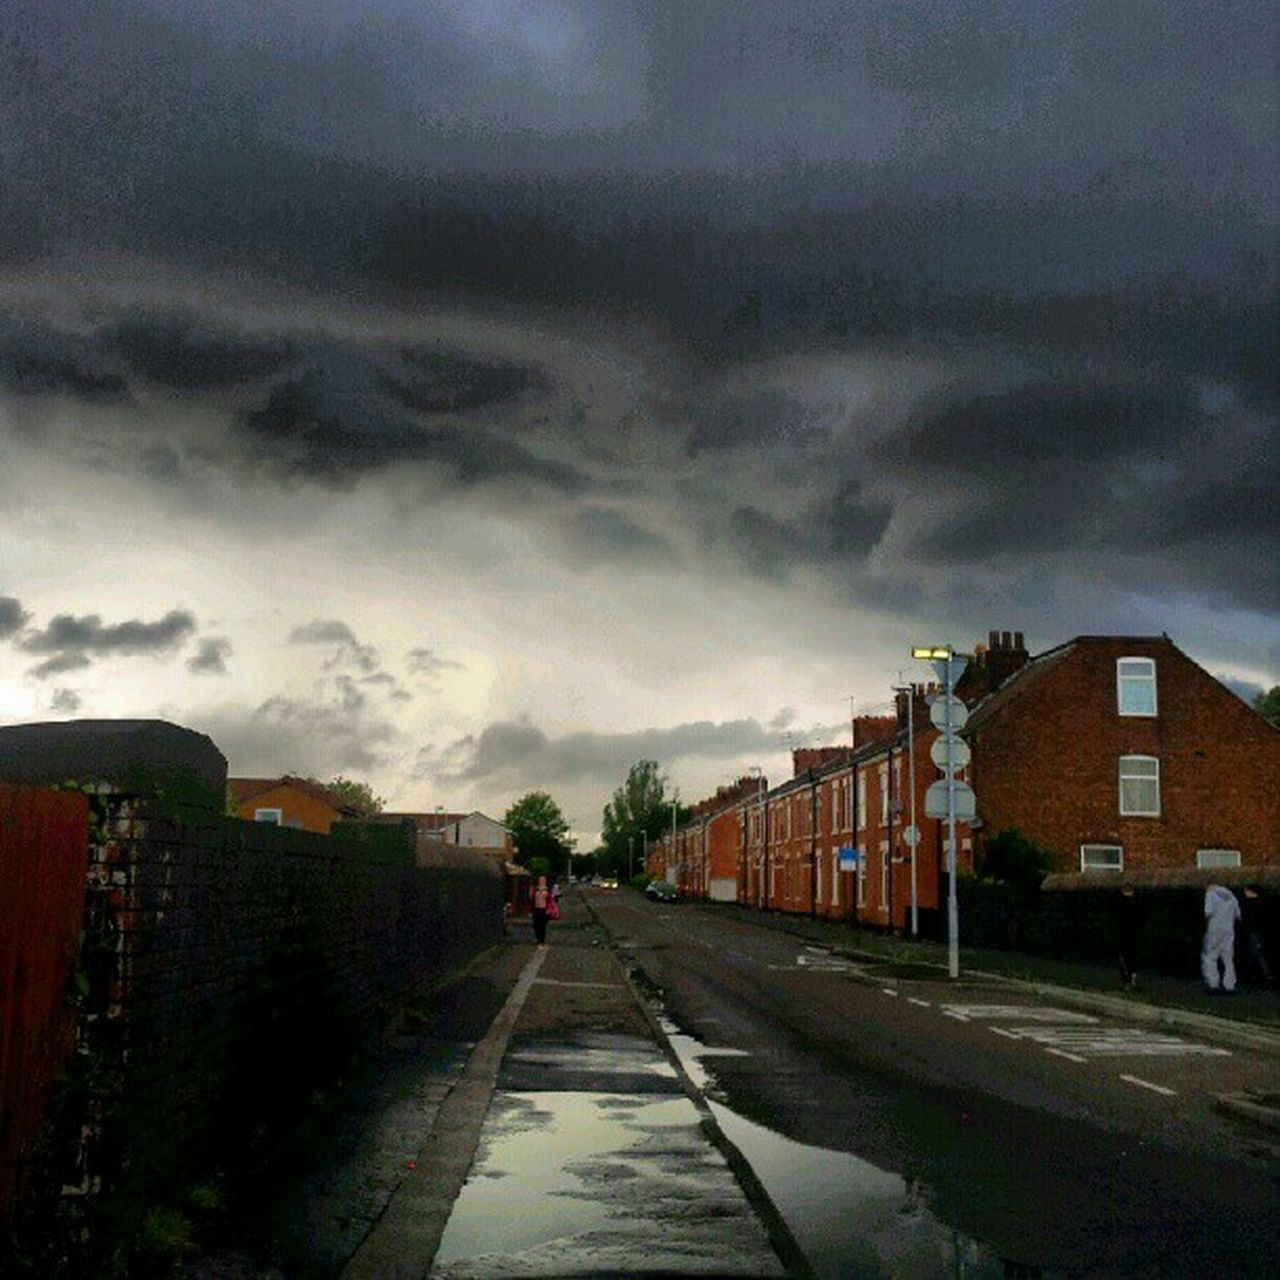 cloud - sky, sky, weather, architecture, storm cloud, built structure, building exterior, city, house, car, the way forward, outdoors, no people, transportation, road, day, nature